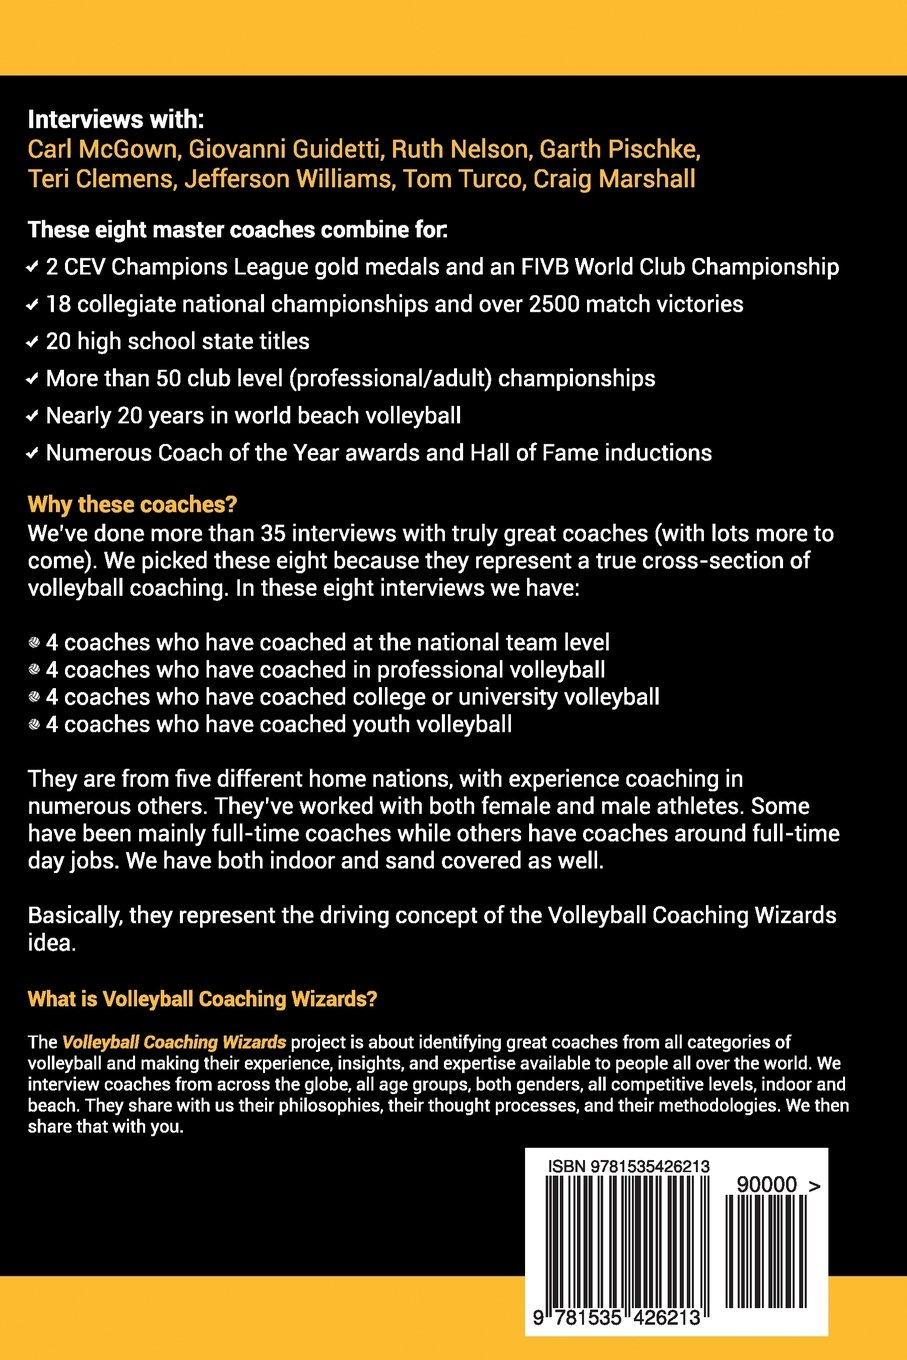 volleyball coaching wizards insights and experience from some of